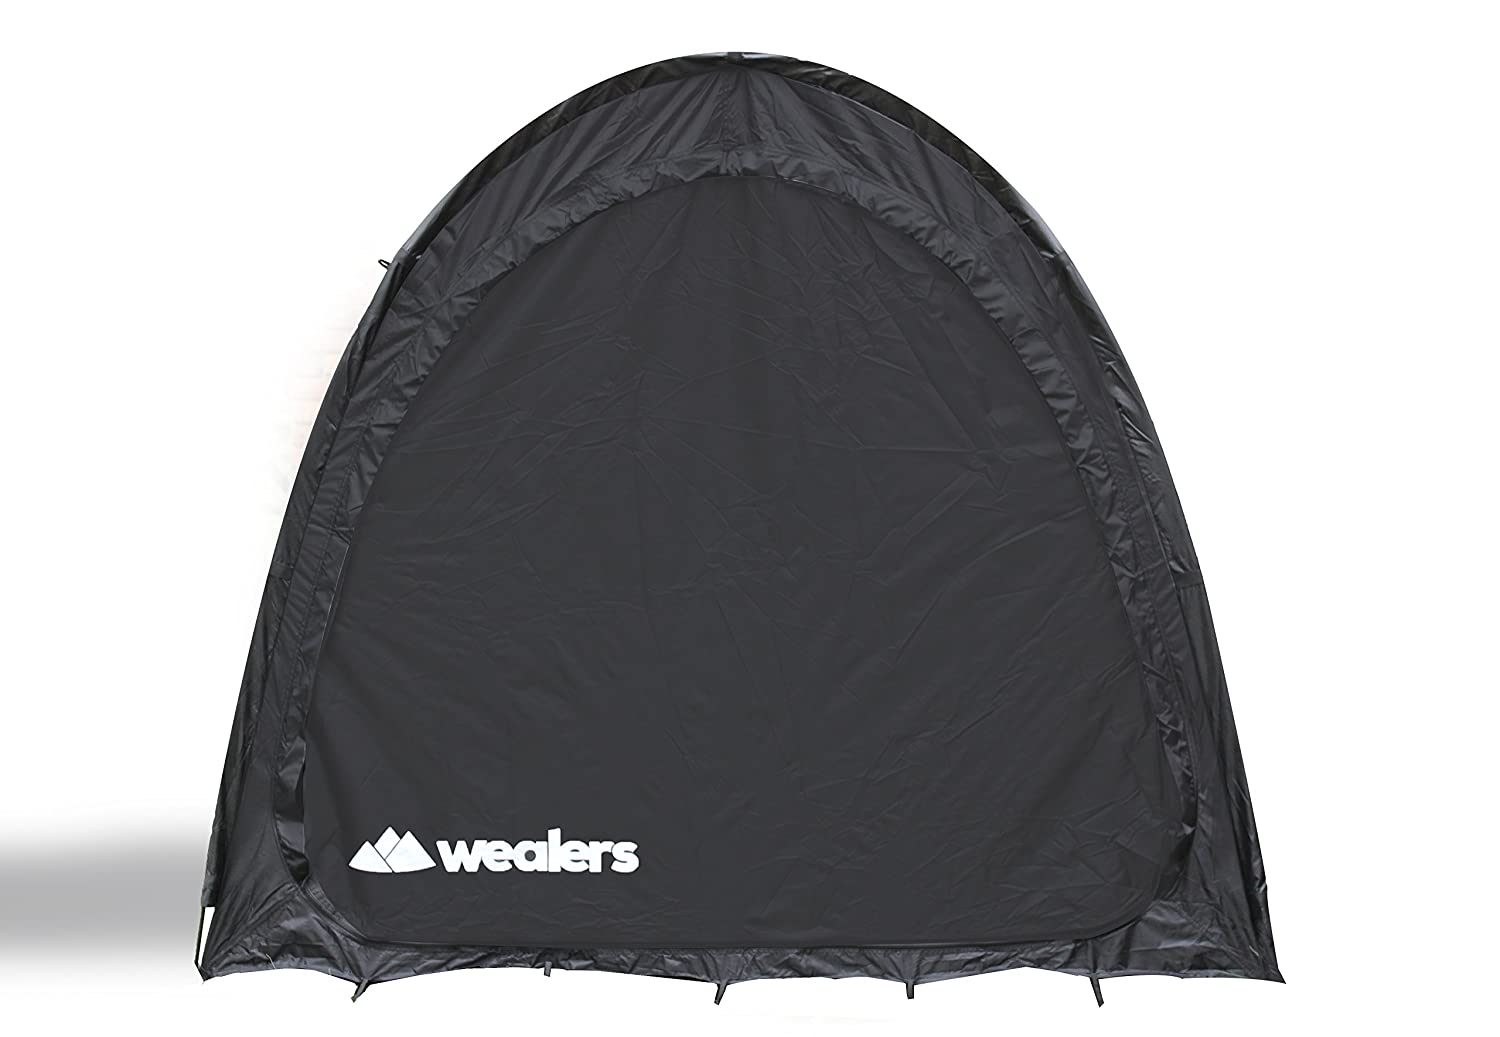 Portable Weatherproof Pop Up Bike Storage Tent with Travel Tote Bag| Instant Polyester Bicycle Touring Tent and Utility Storage Organizer for Camping | Backyards | Tours - Bike Shed (Black) Wealers